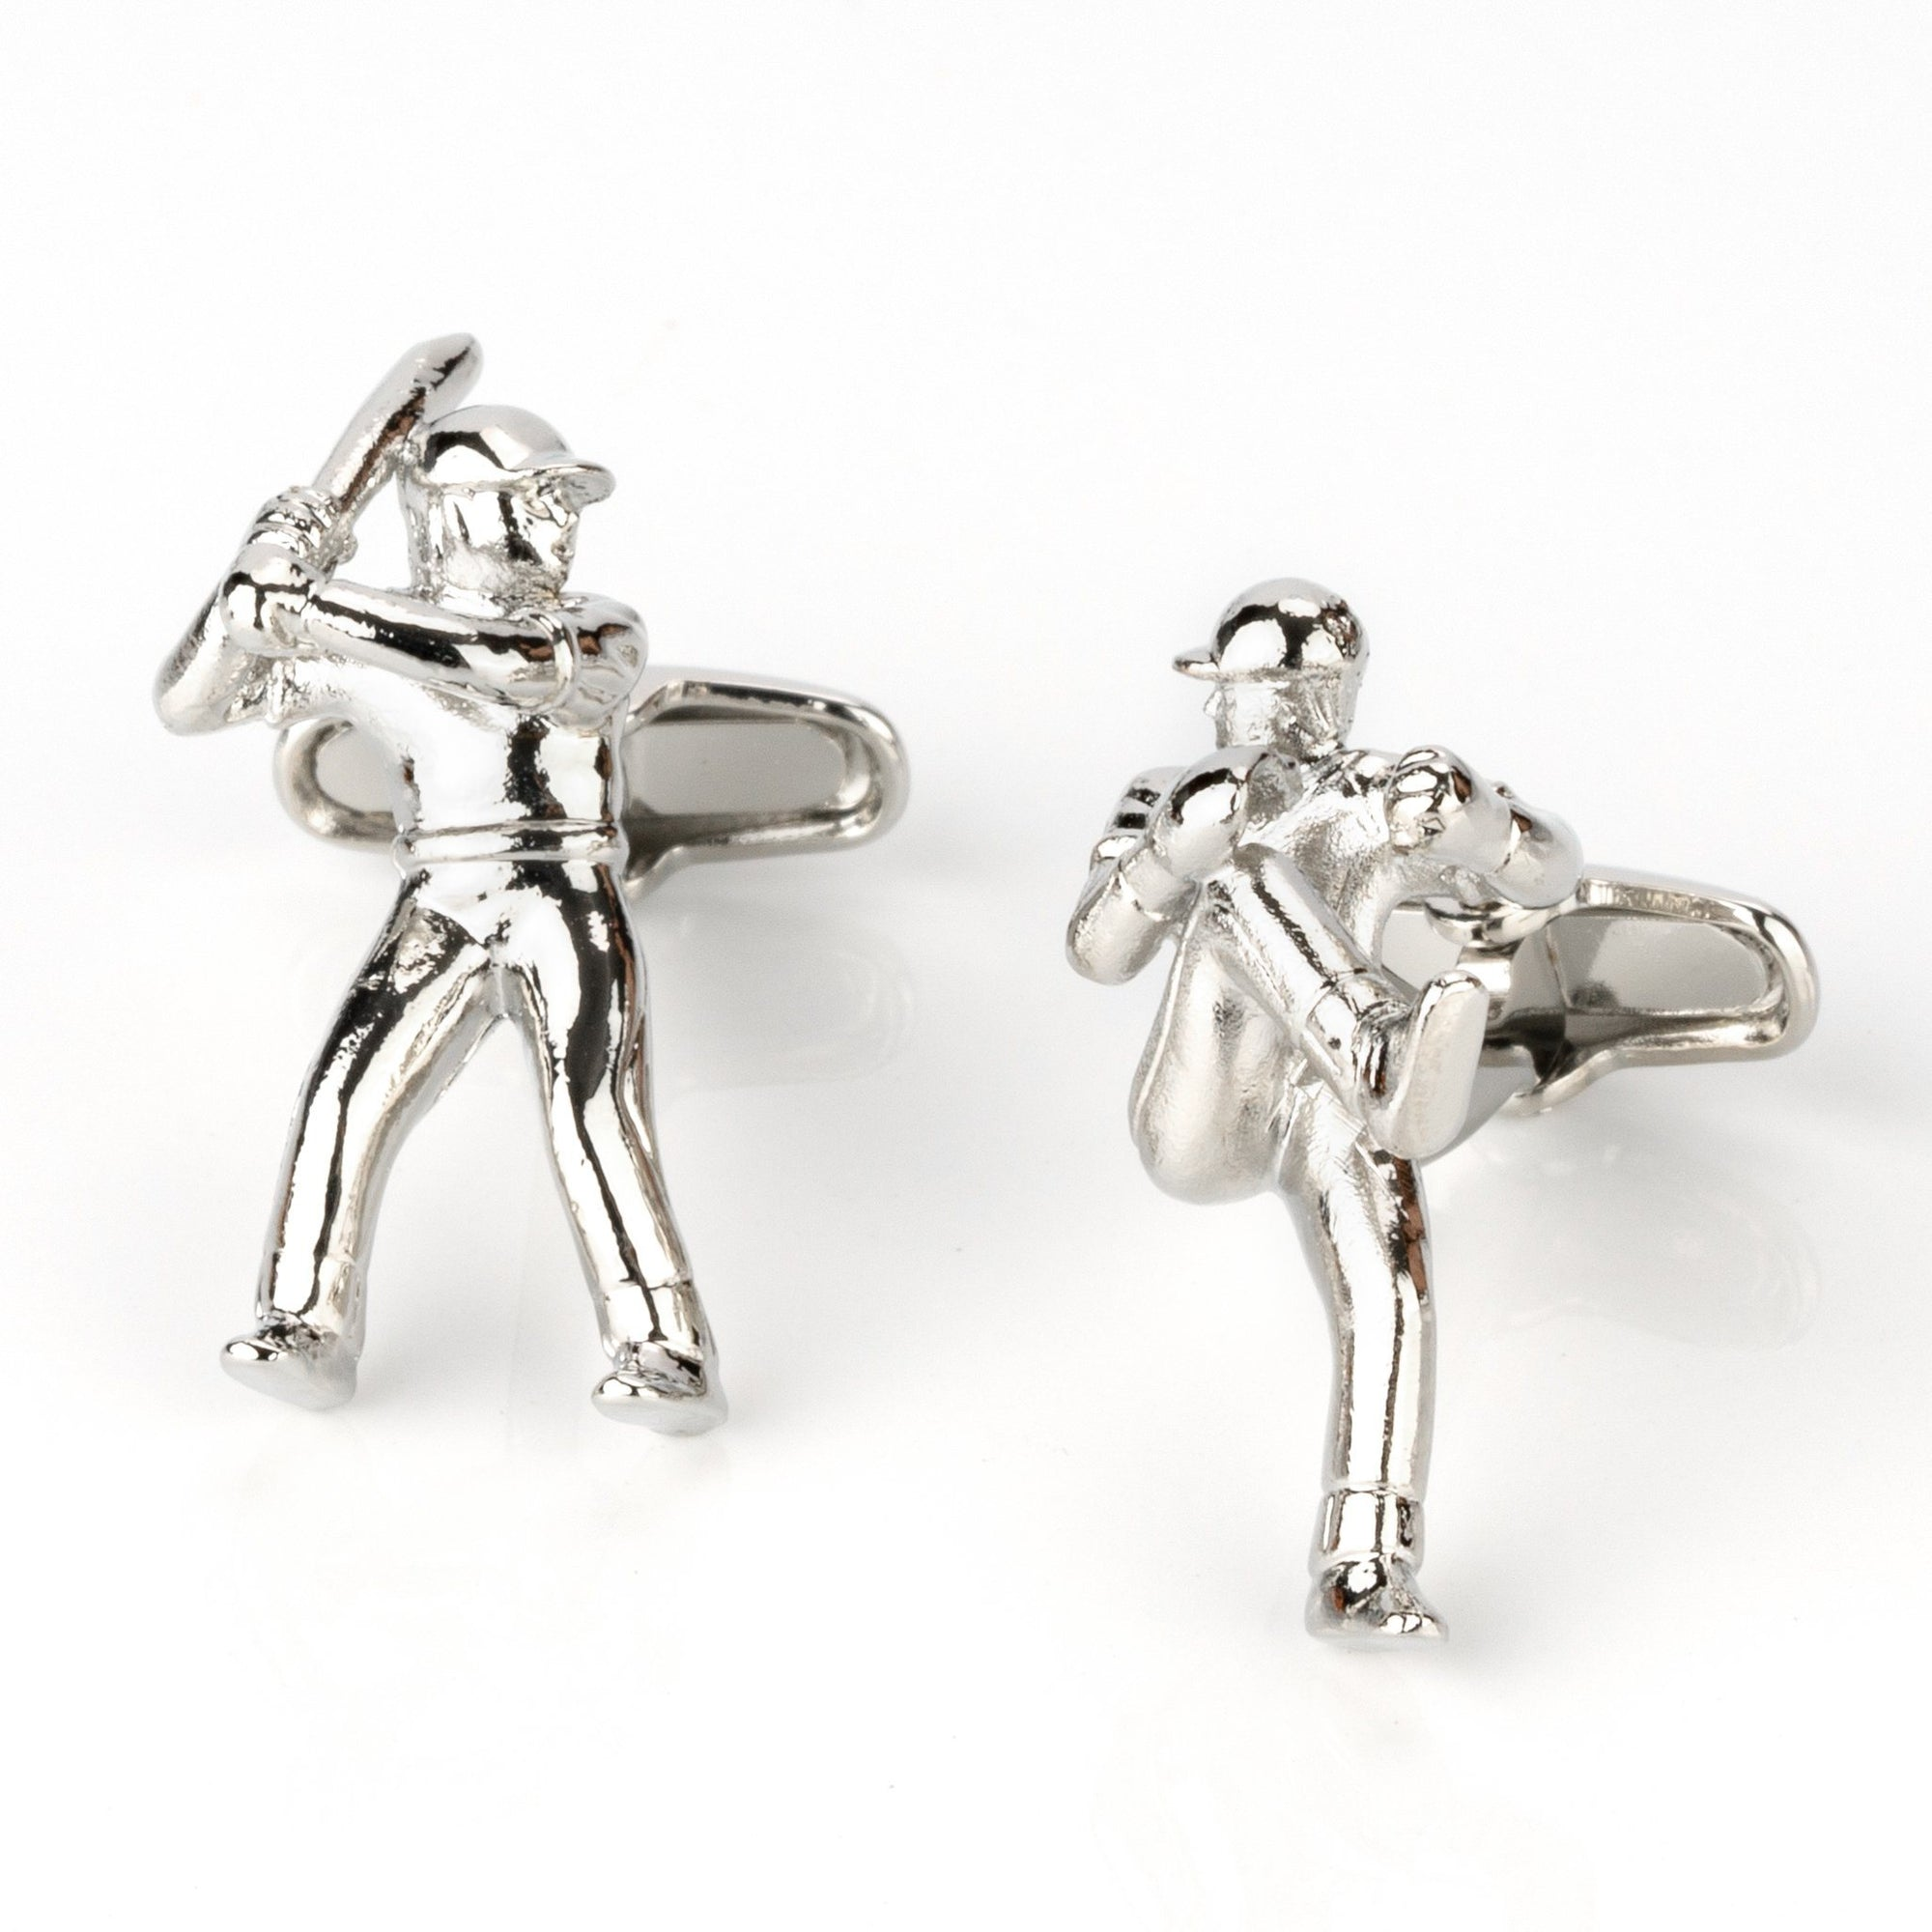 Baseball Pitcher and Batter Cufflinks, Novelty Cufflinks, Cuffed.com.au, CL4000, Sports, Clinks Australia